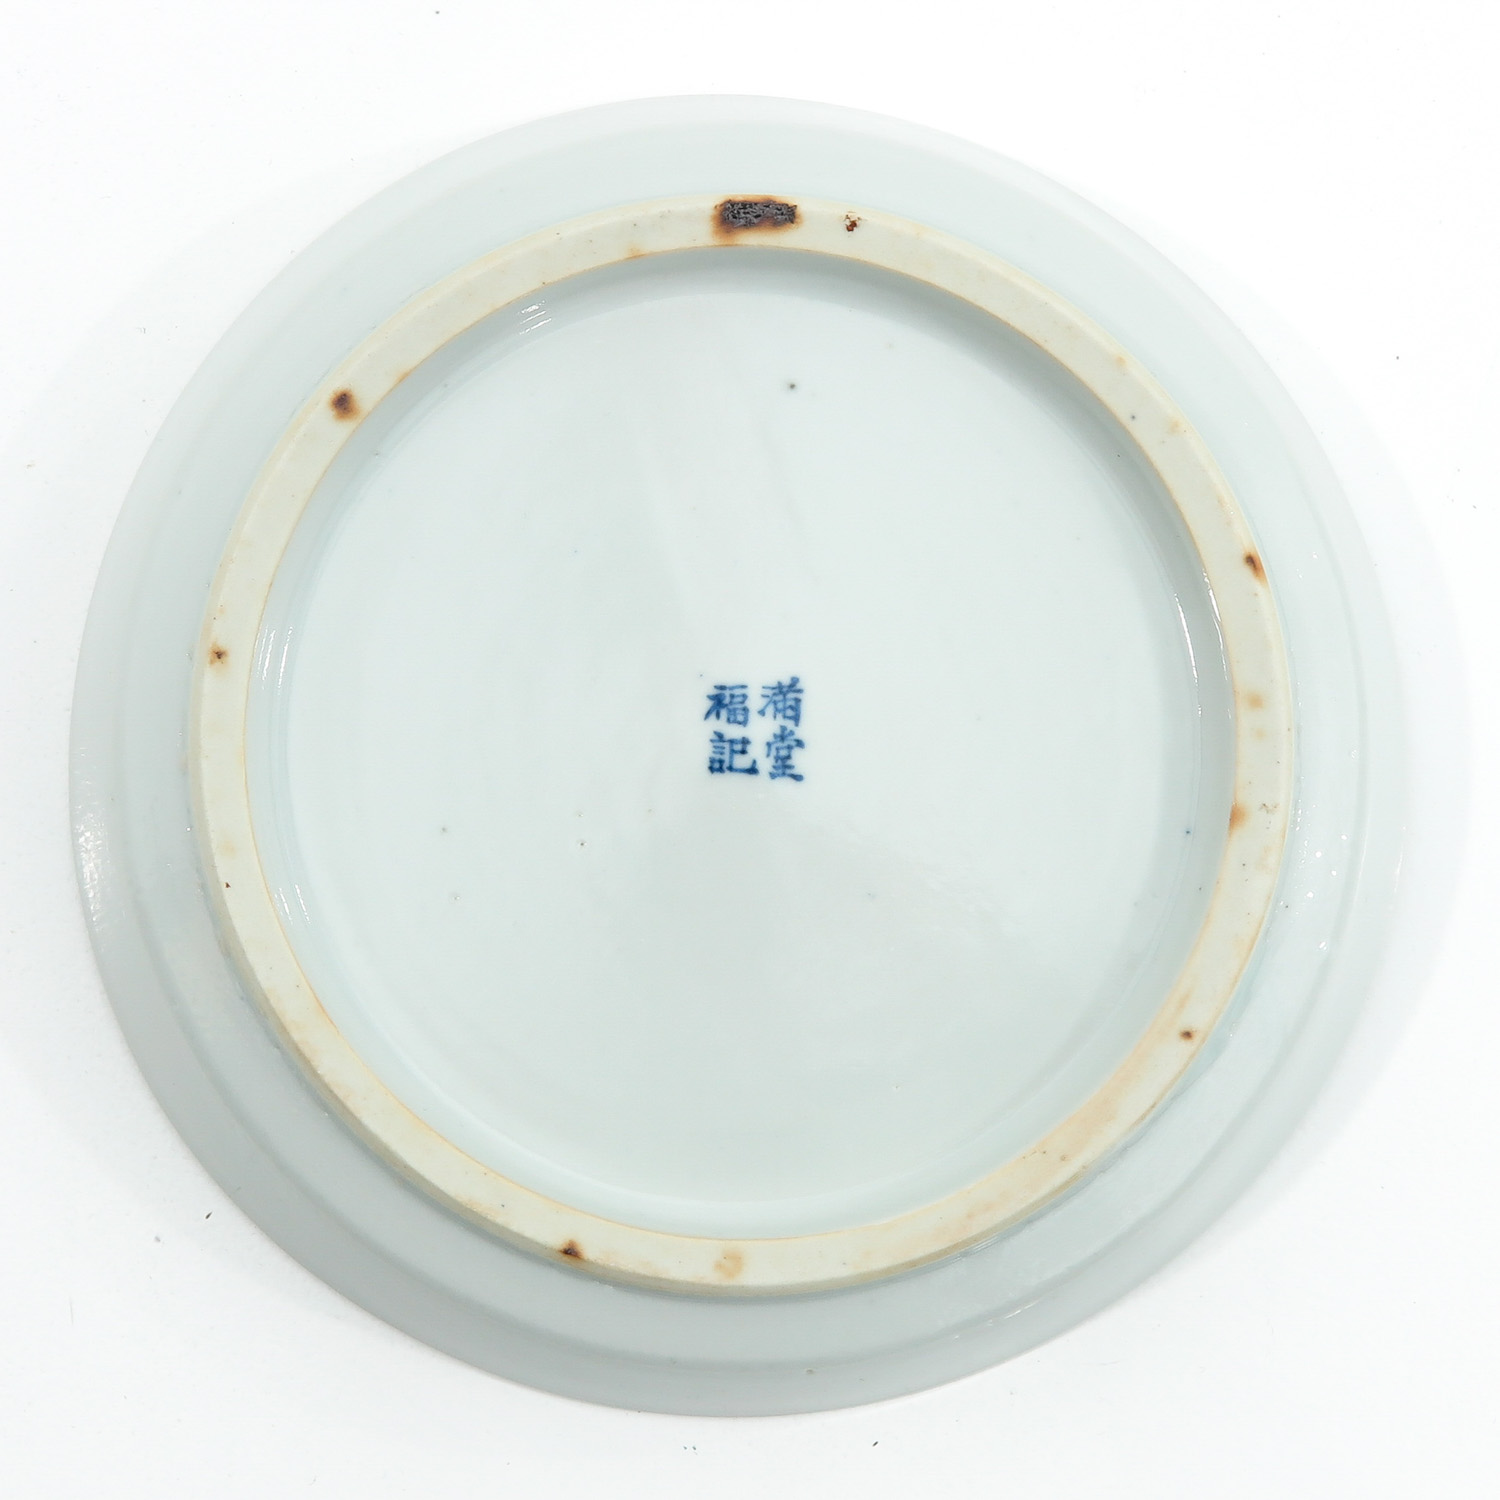 A Blue and White Small Dish - Image 2 of 6